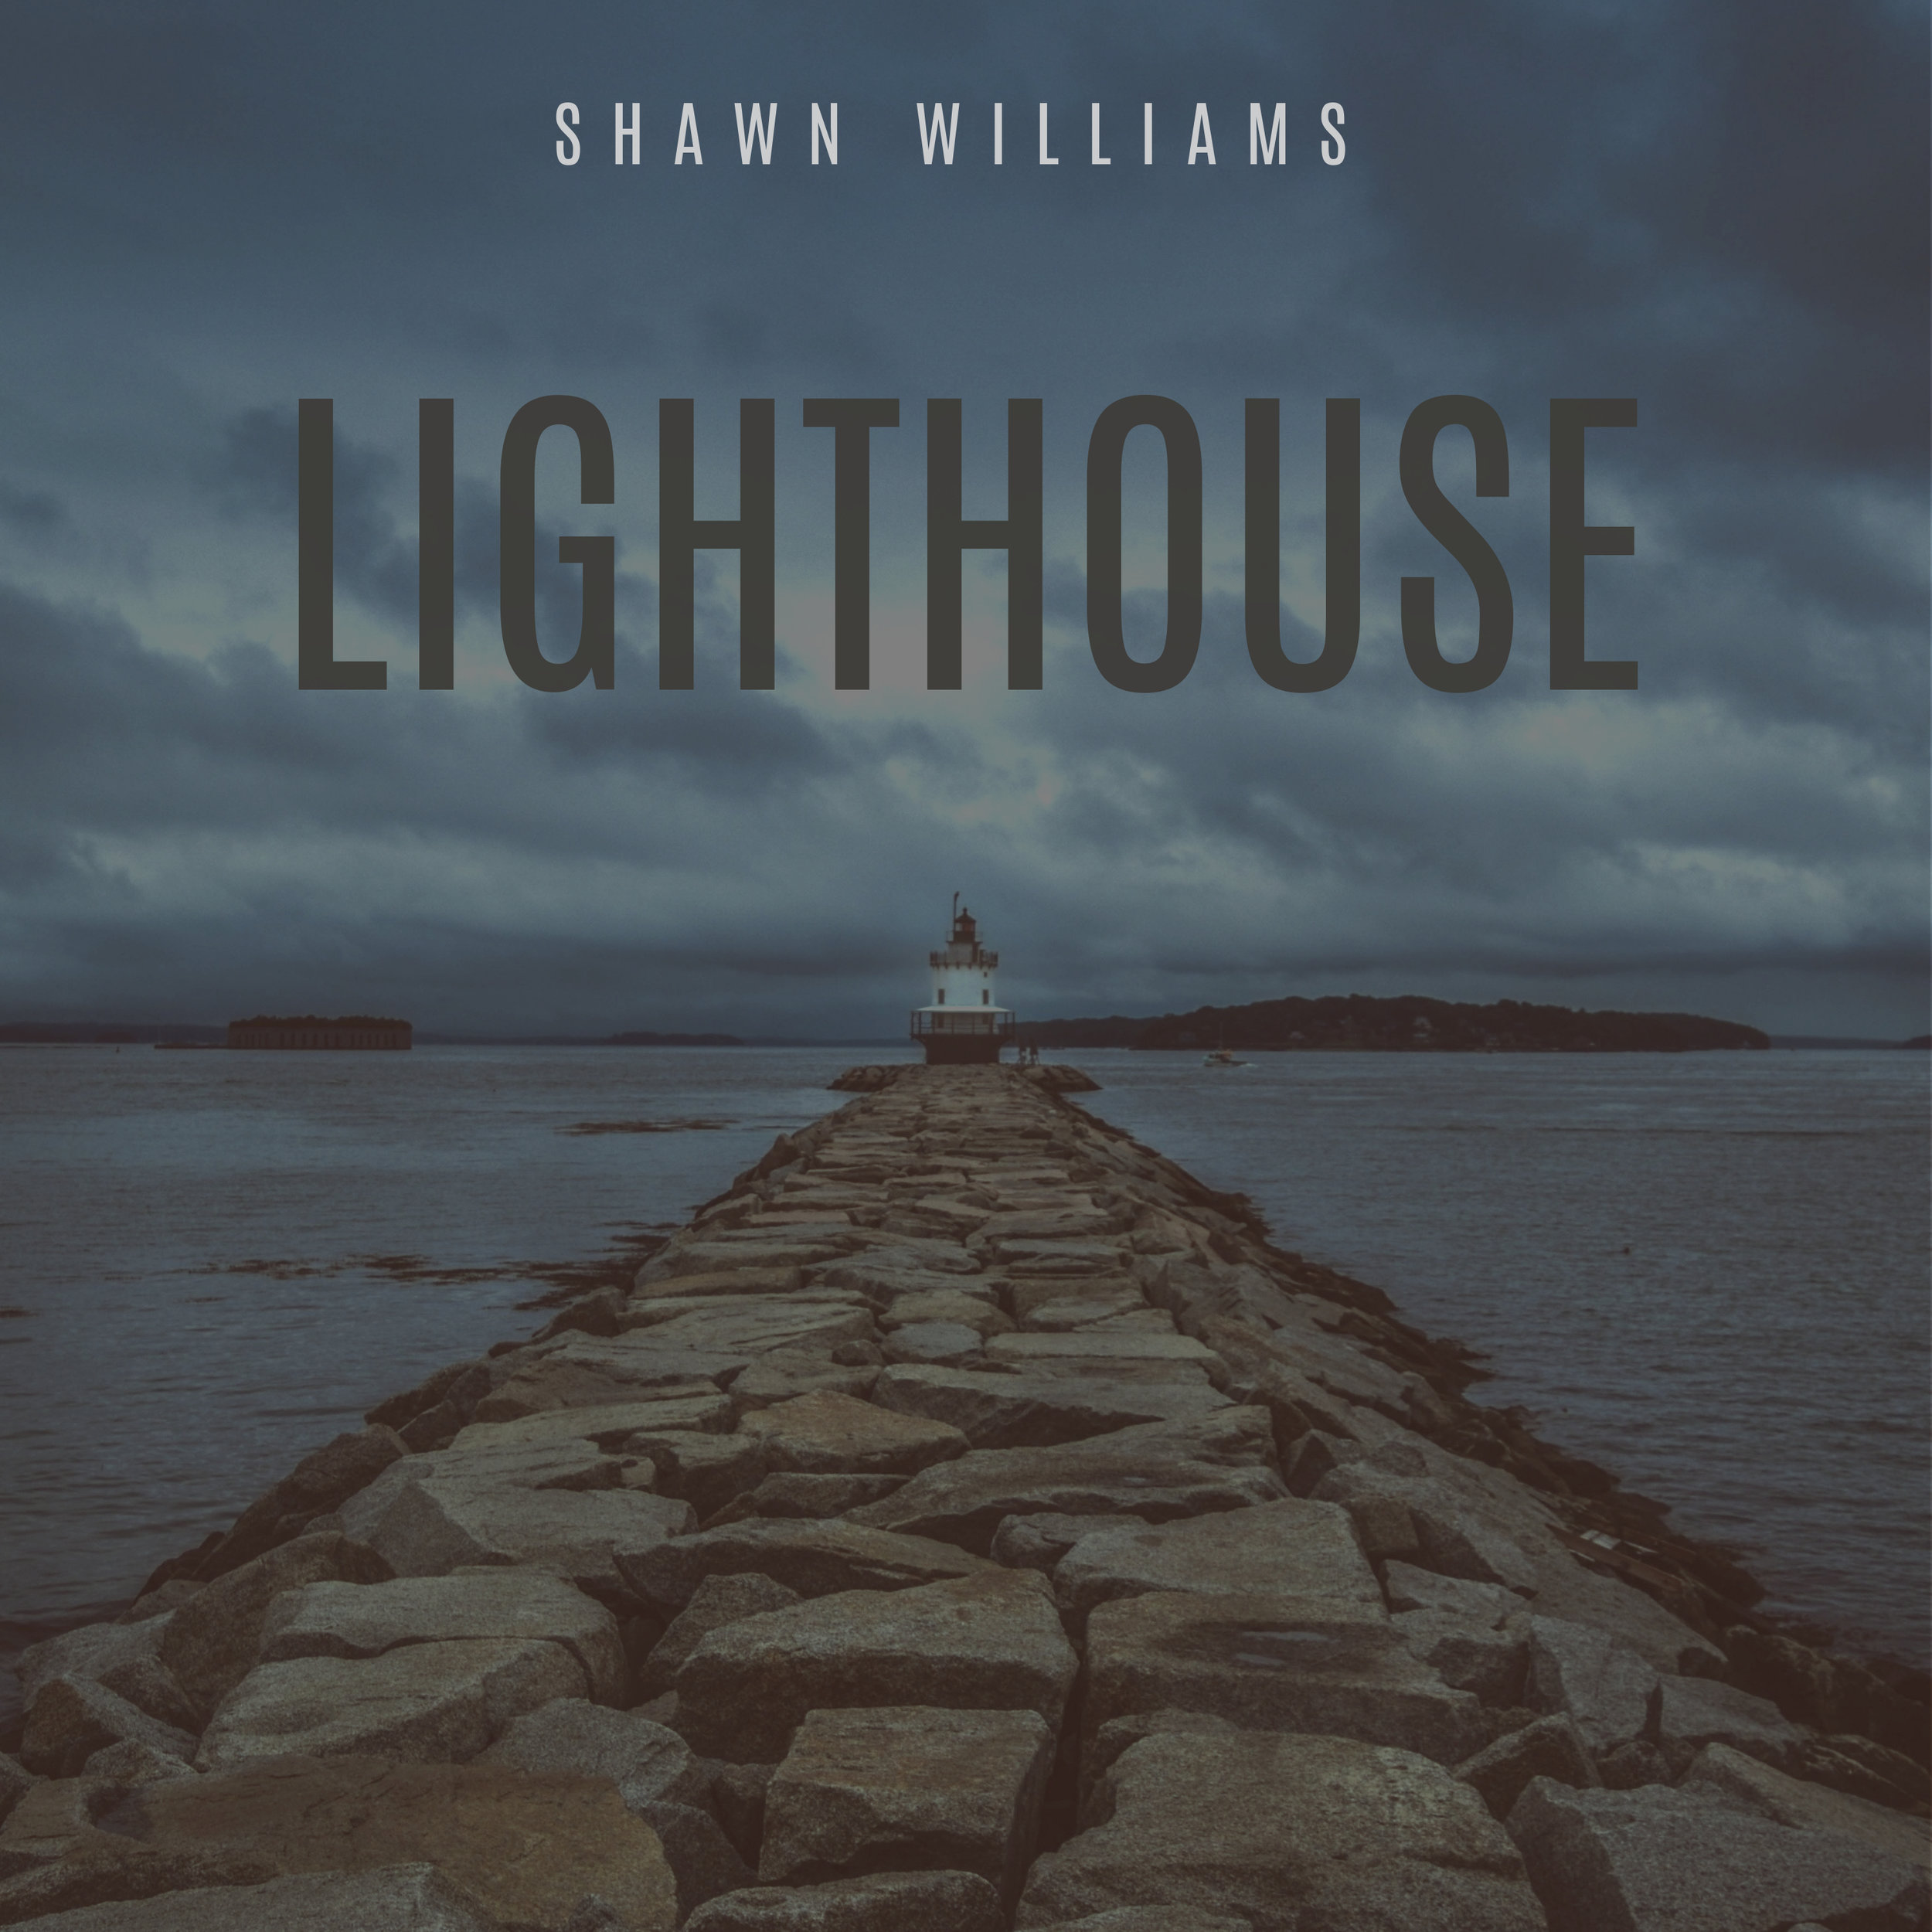 Lighthouse by Shawn Williams, film composer